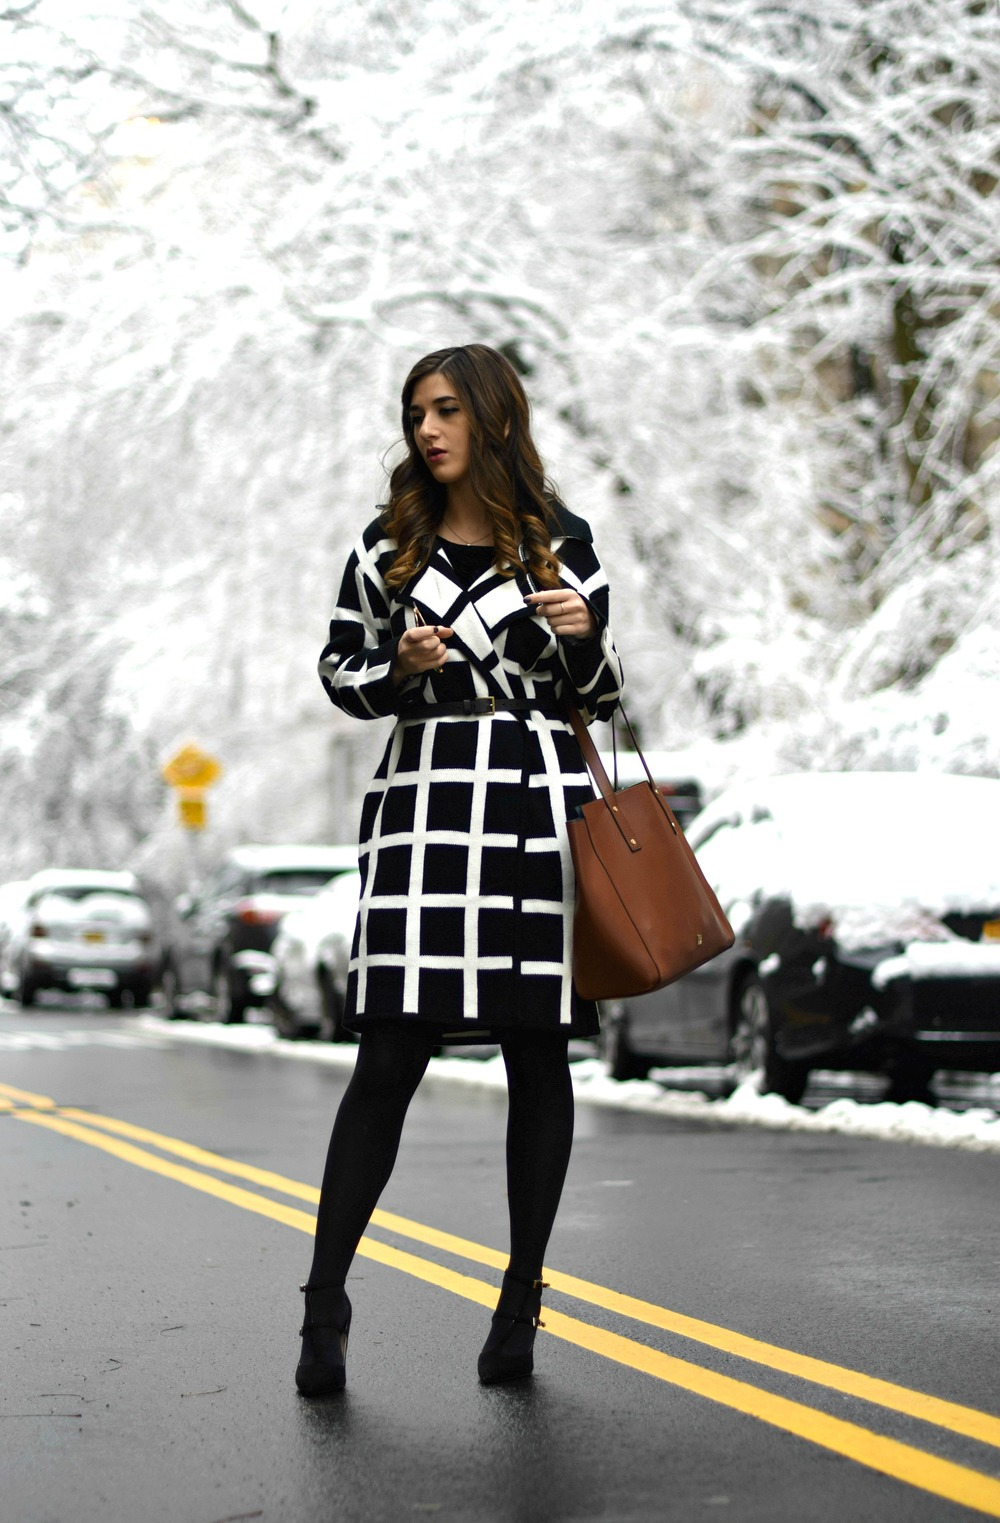 Black and White Windowpane Sweater Trescool Louboutins & Love Fashion Blog Esther Santer NYC Street Blogger Winter Wear Shop Cozy Layers Zara Black Heels Ivanka Trump Soho Tote Bag Velvet Dress Outfit Inspo OOTD Model Hair Photoshoot Beauty Sunglasses.jpg